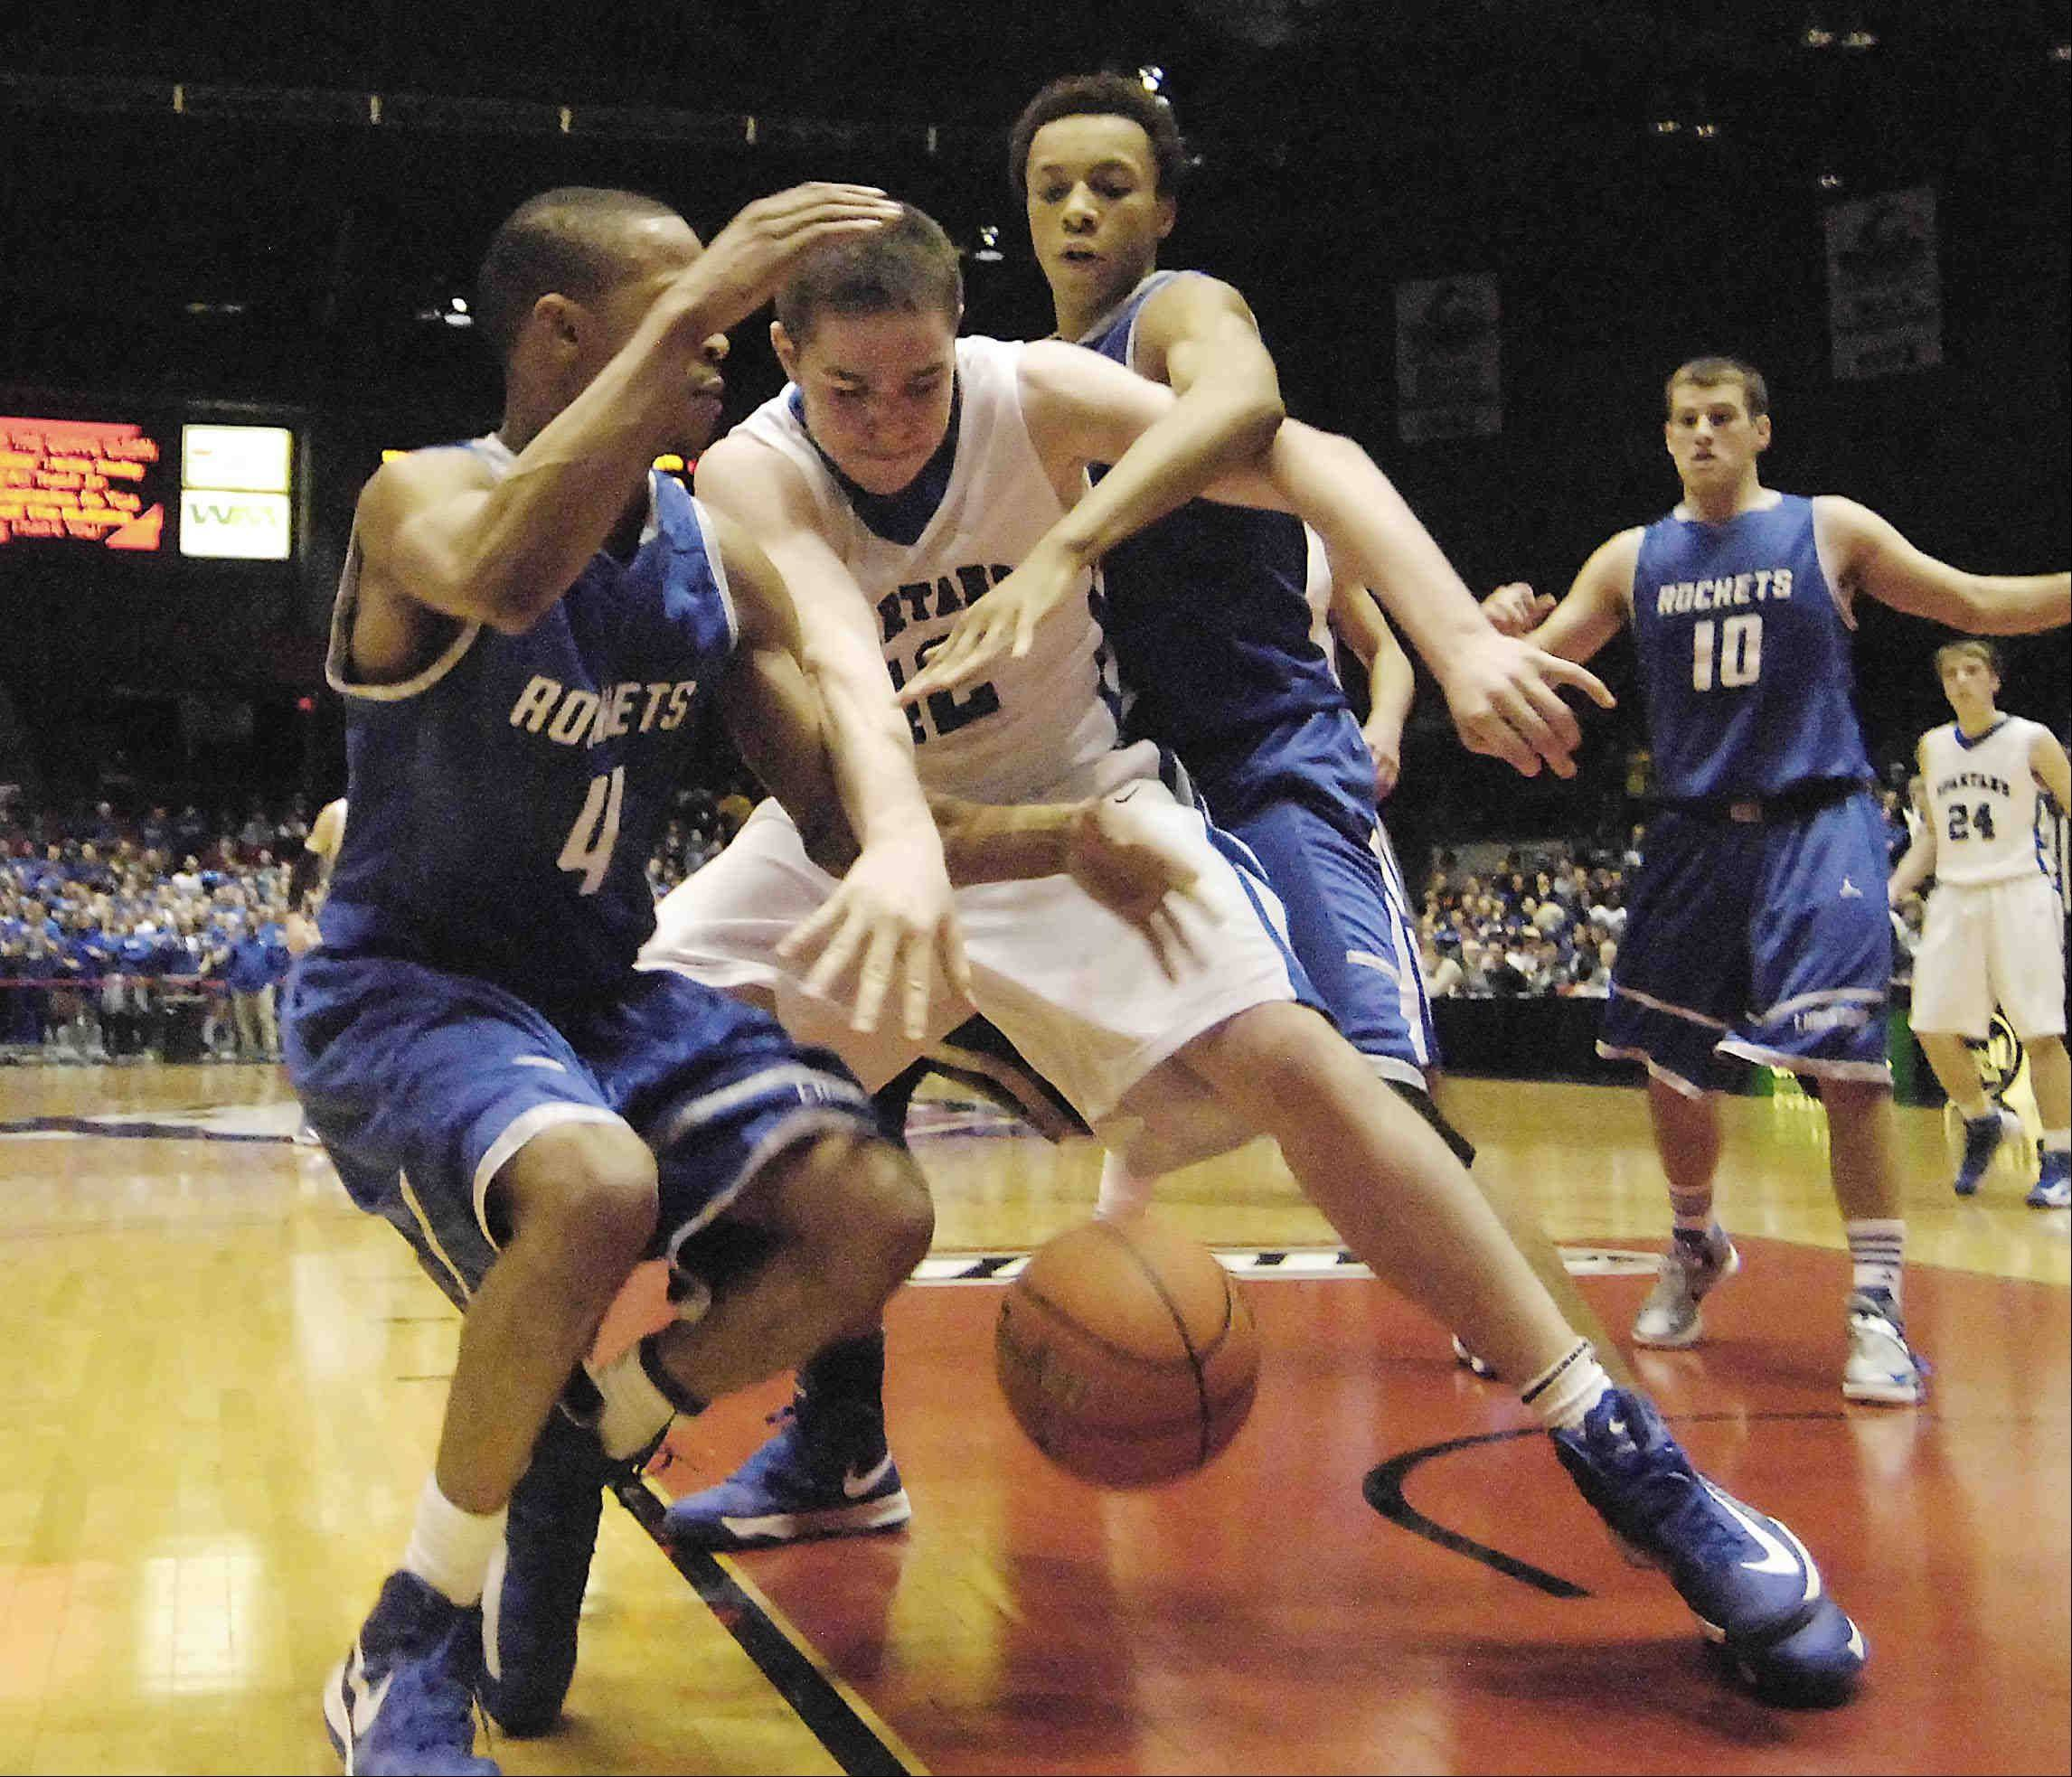 St. Francis' Killan Brown loses the ball under the defense of Bartonville Limestone's Lorenzo Burns and David Anderson.